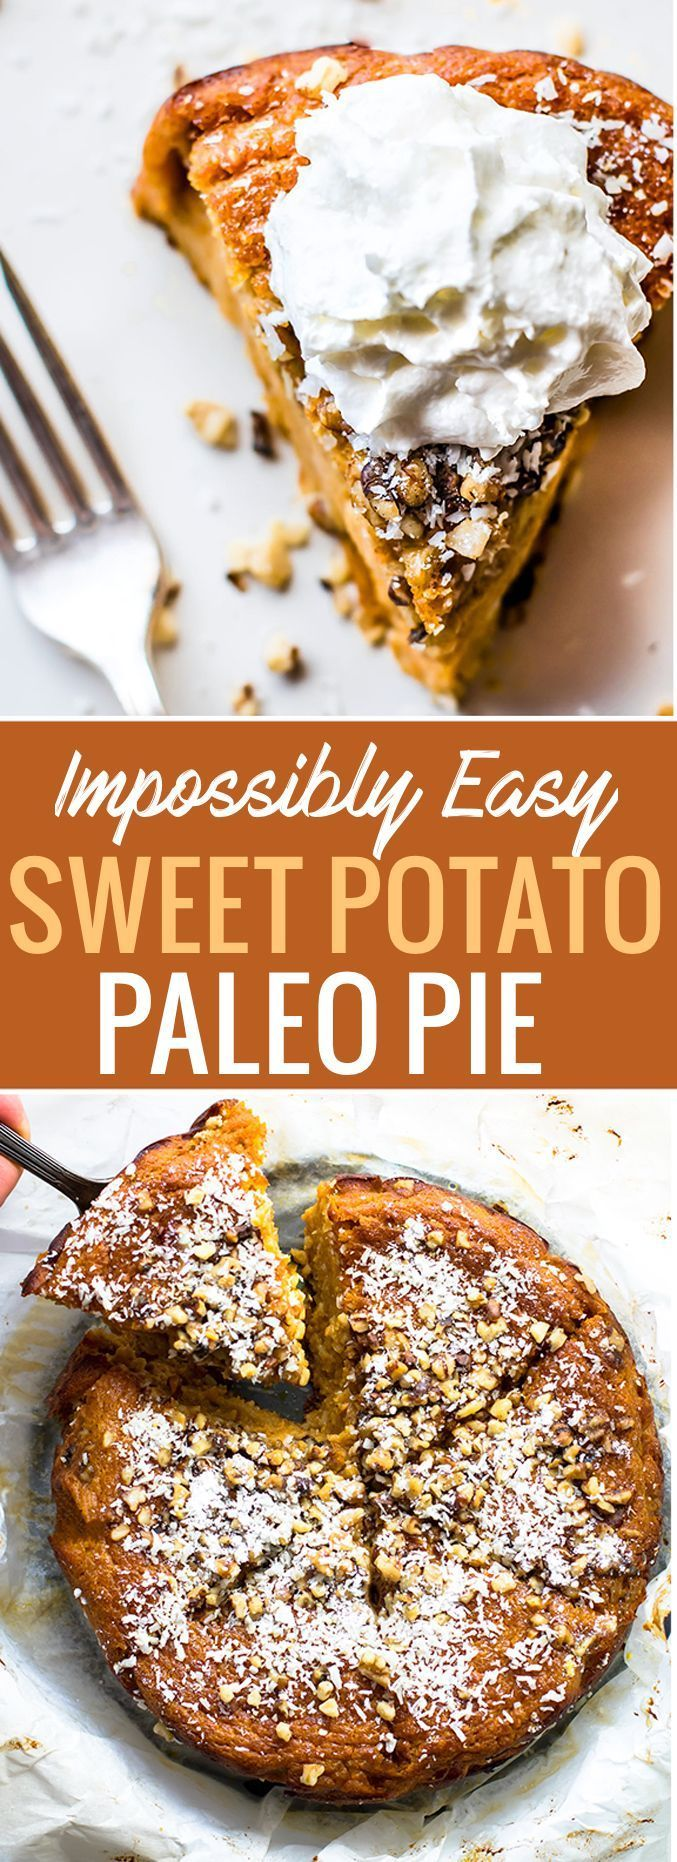 Impossibly EASY Paleo Sweet Potato Pie with coconut! A Paleo sweet potato pie recipe that's IMPOSSIBLE to mess up! Made with simple healthy ingredients! A paleo sweet potato pie that miraculously forms its own crust while baking. http://www.cottercrunch.com